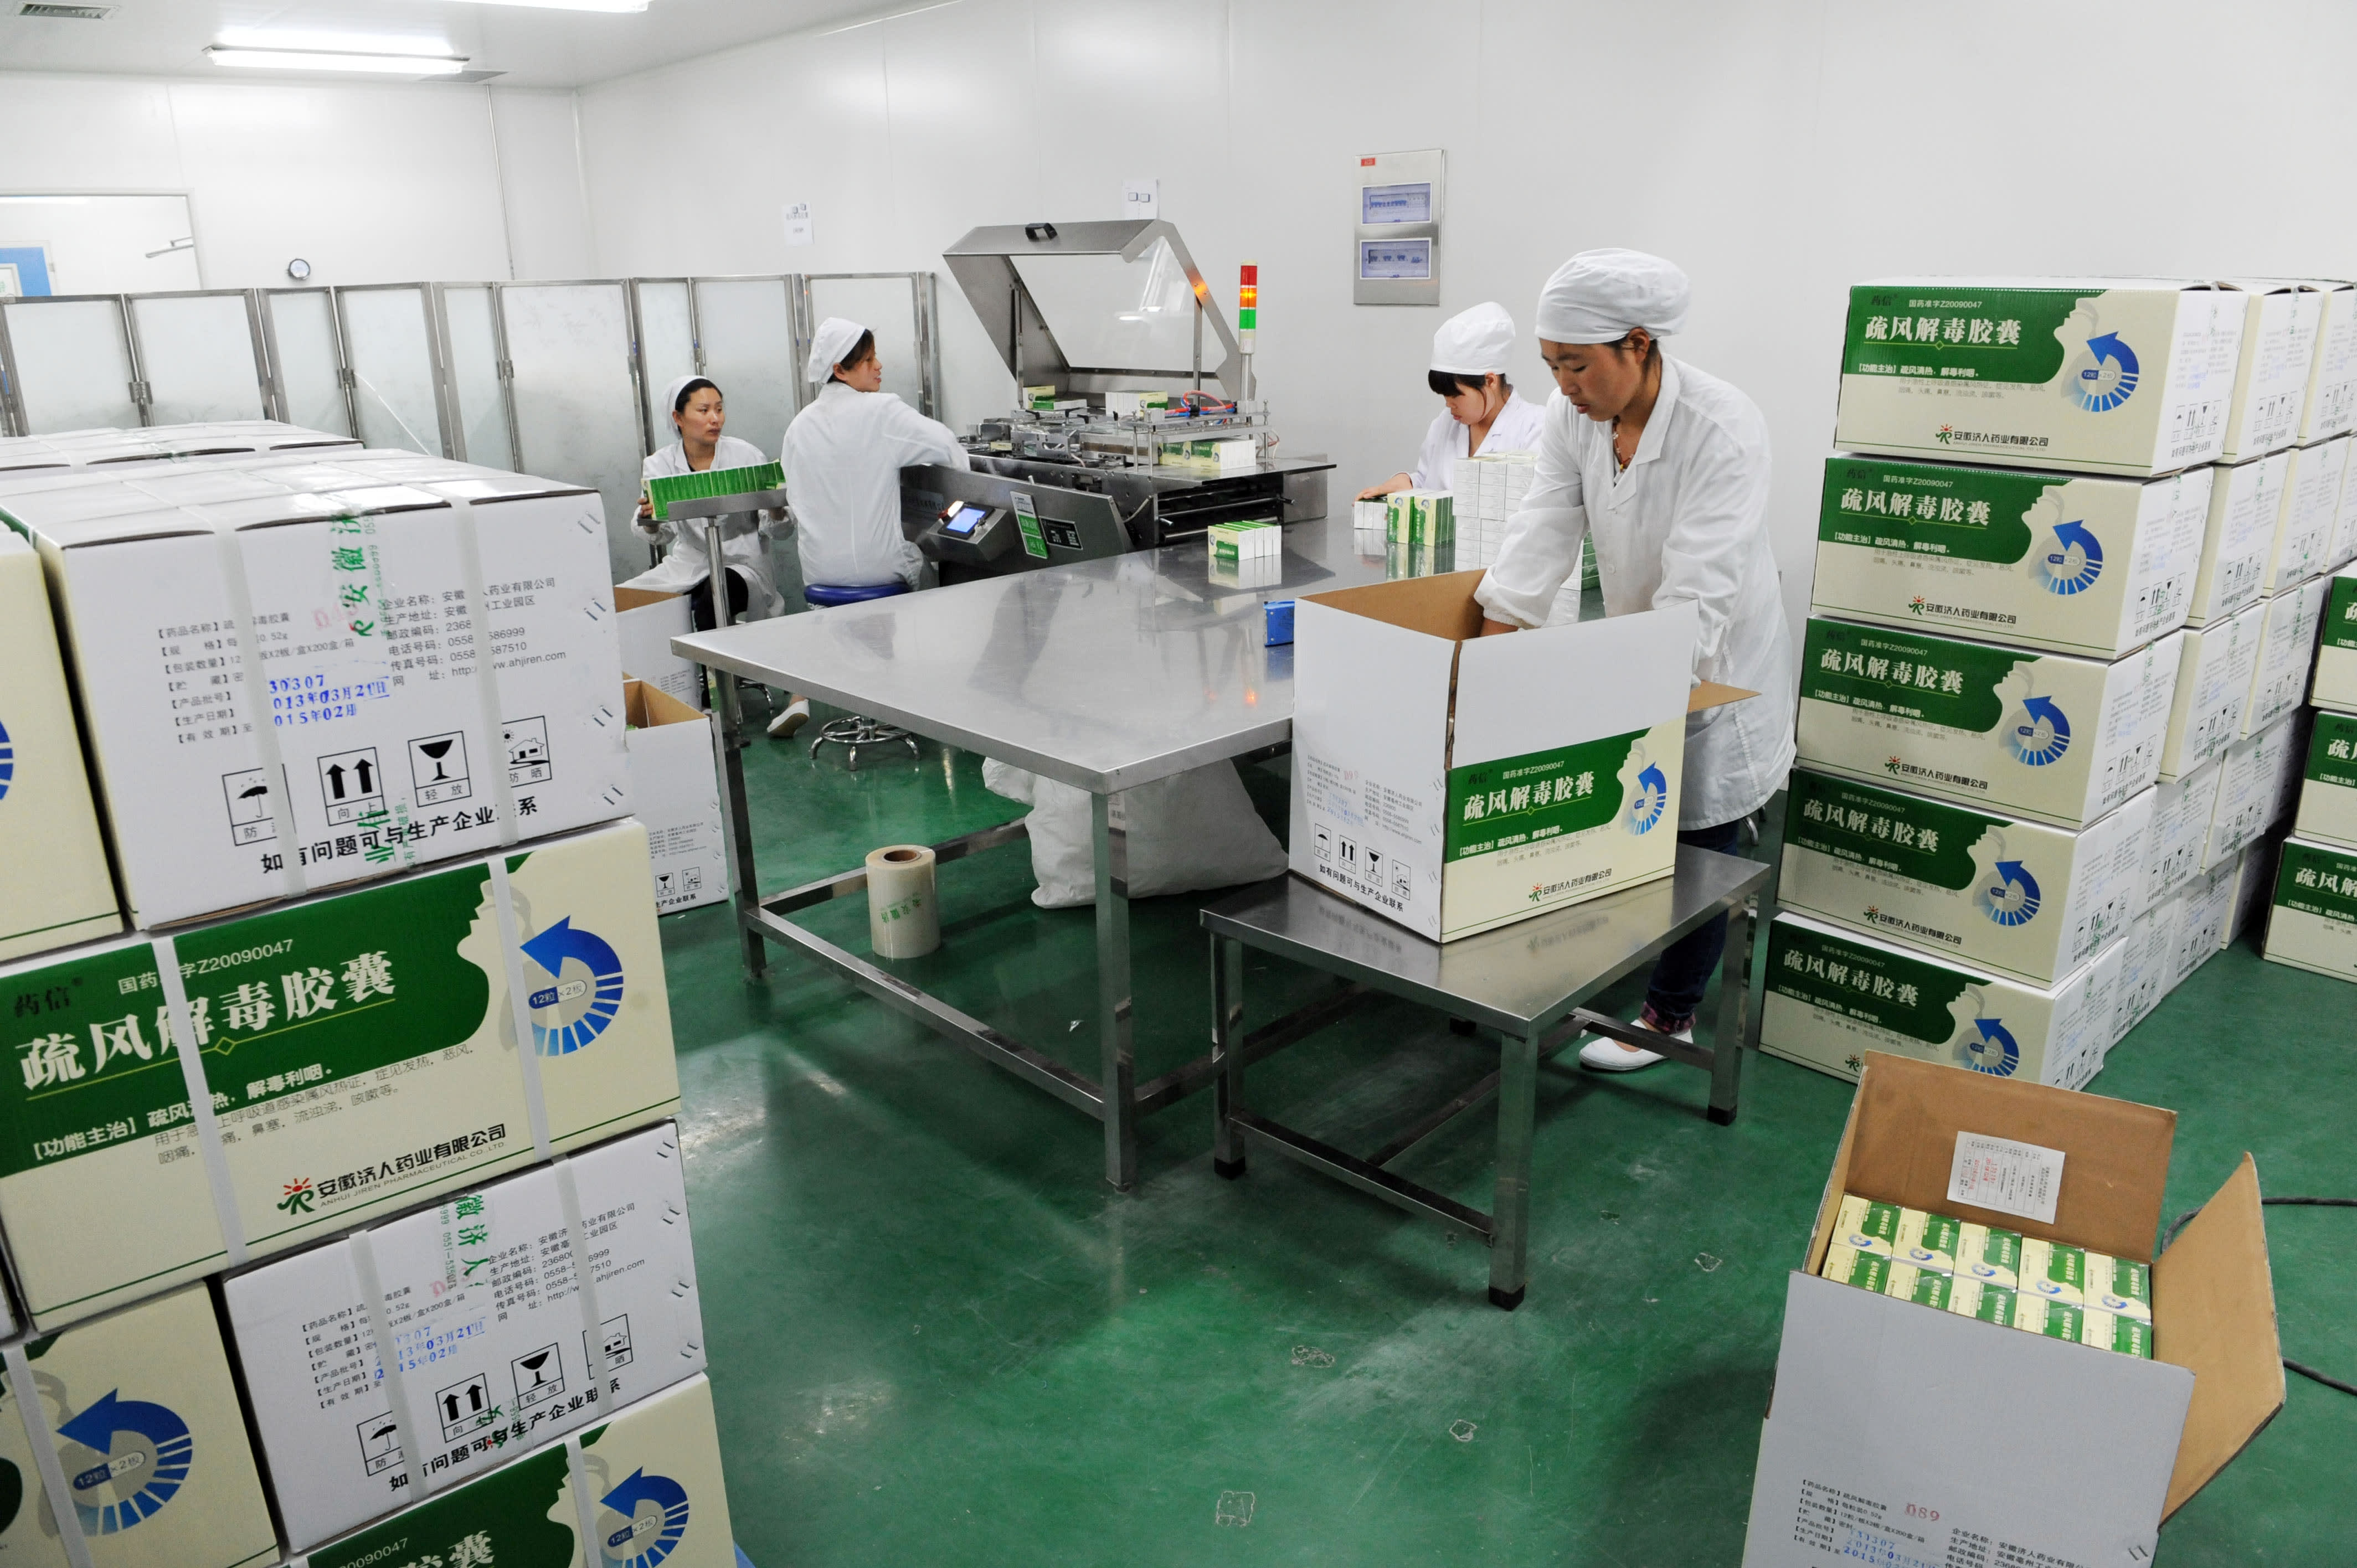 Employees work on the production line of Shufeng Jiedu Capsule, a Herbal Medicine for treating avian influenza patients, at a workshop of Anhui Jiren Pharmaceutical Co., Ltd on April 8, 2013 in Bozhou, China.